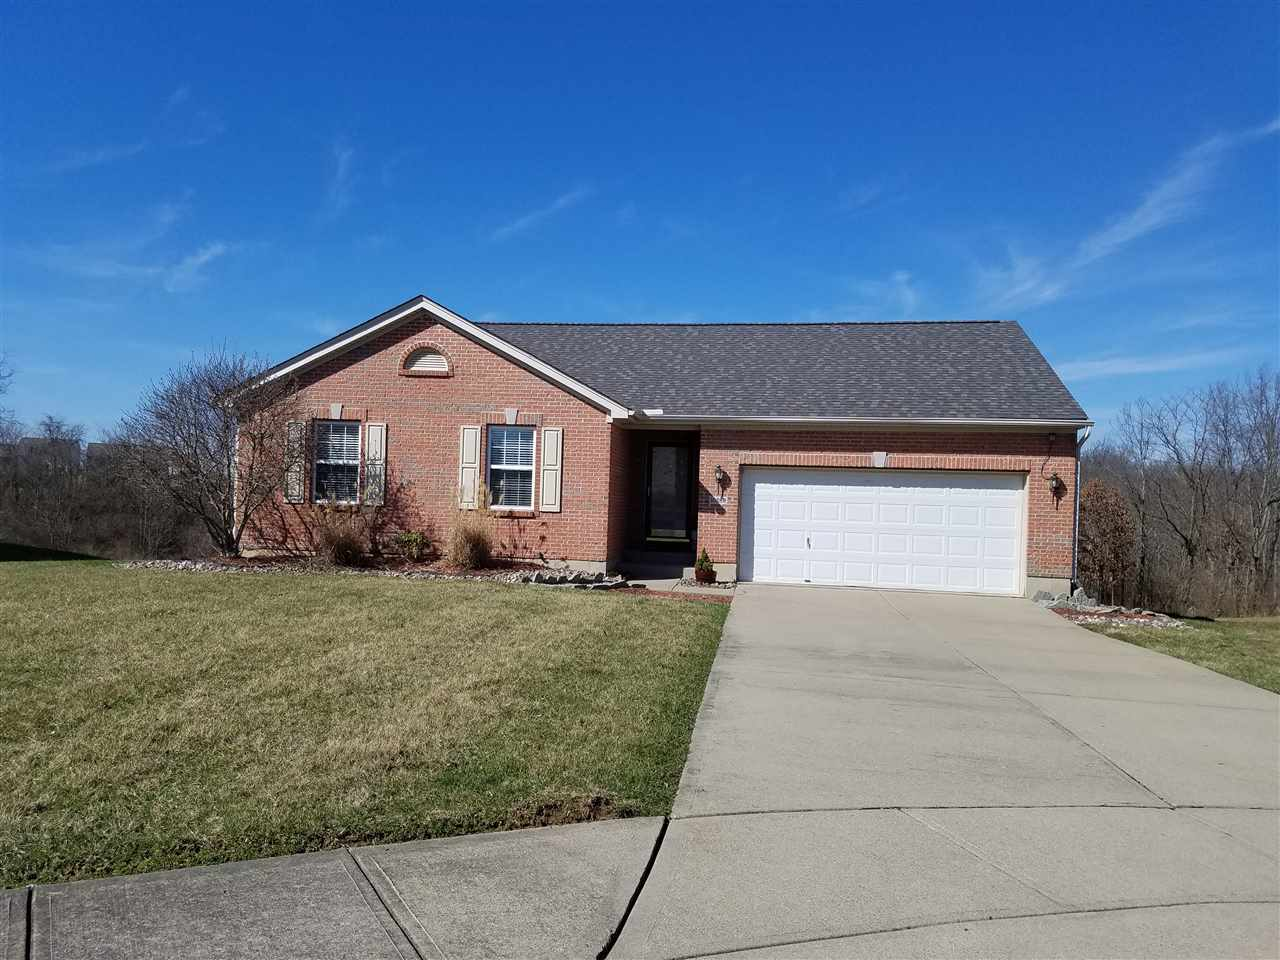 Photo 1 for 10288 Manassas Ct Independence, KY 41051